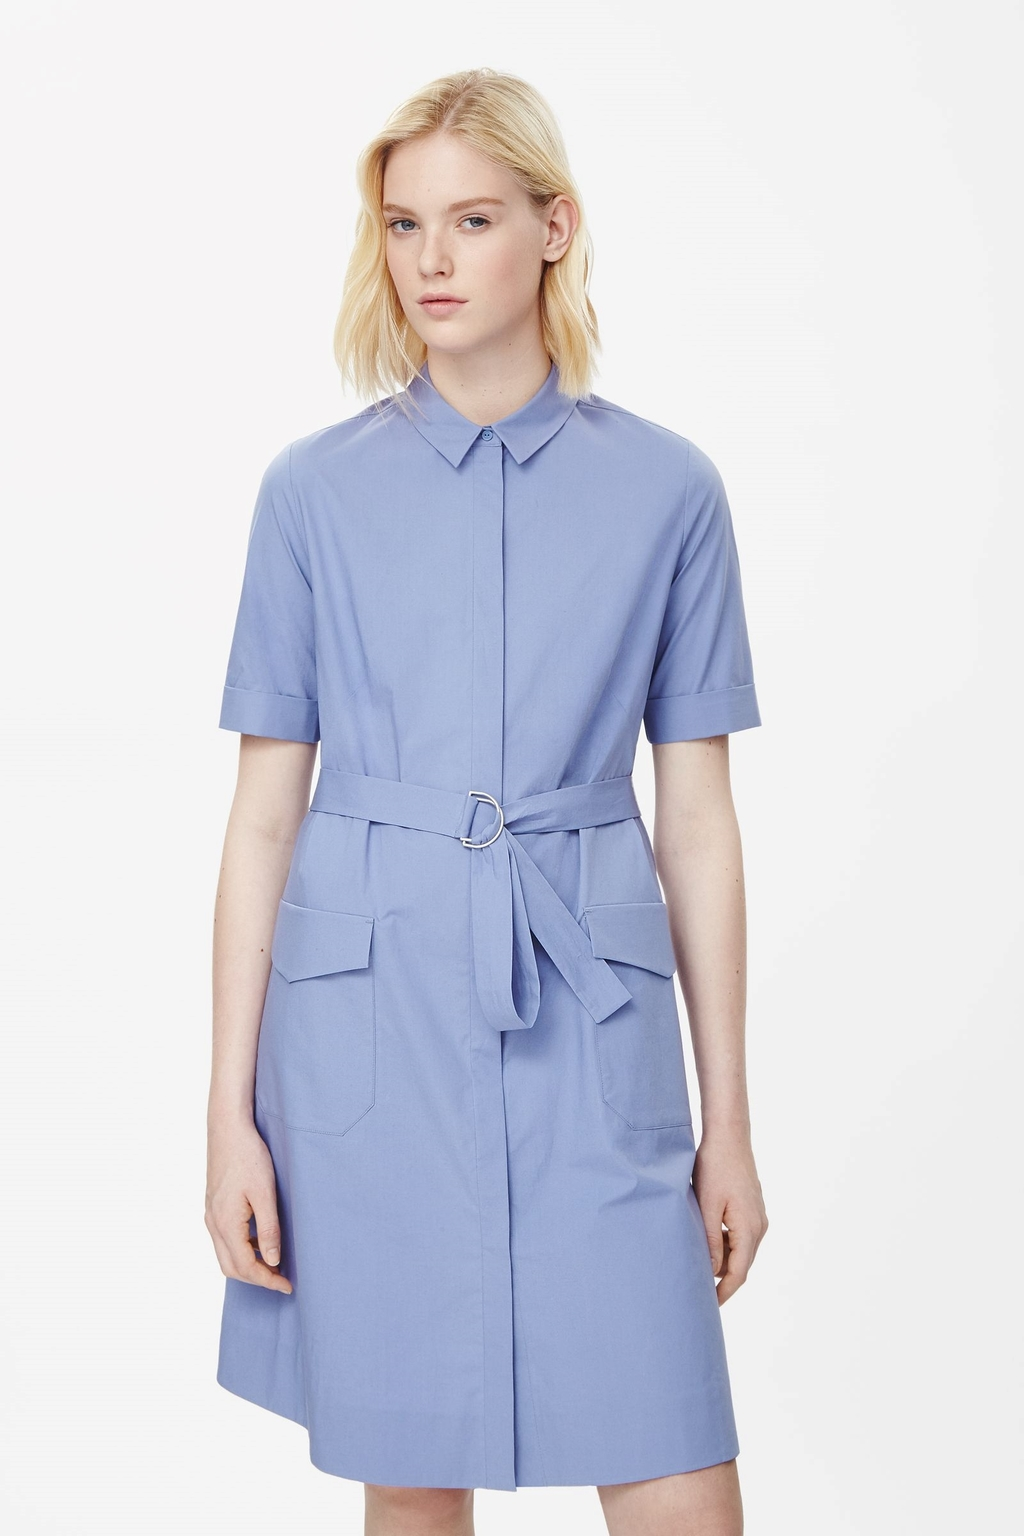 Belted Shirt Dress - style: shirt; neckline: shirt collar/peter pan/zip with opening; fit: fitted at waist; pattern: plain; waist detail: belted waist/tie at waist/drawstring; predominant colour: pale blue; occasions: casual, creative work; length: just above the knee; fibres: cotton - mix; sleeve length: short sleeve; sleeve style: standard; texture group: cotton feel fabrics; pattern type: fabric; season: s/s 2015; wardrobe: highlight